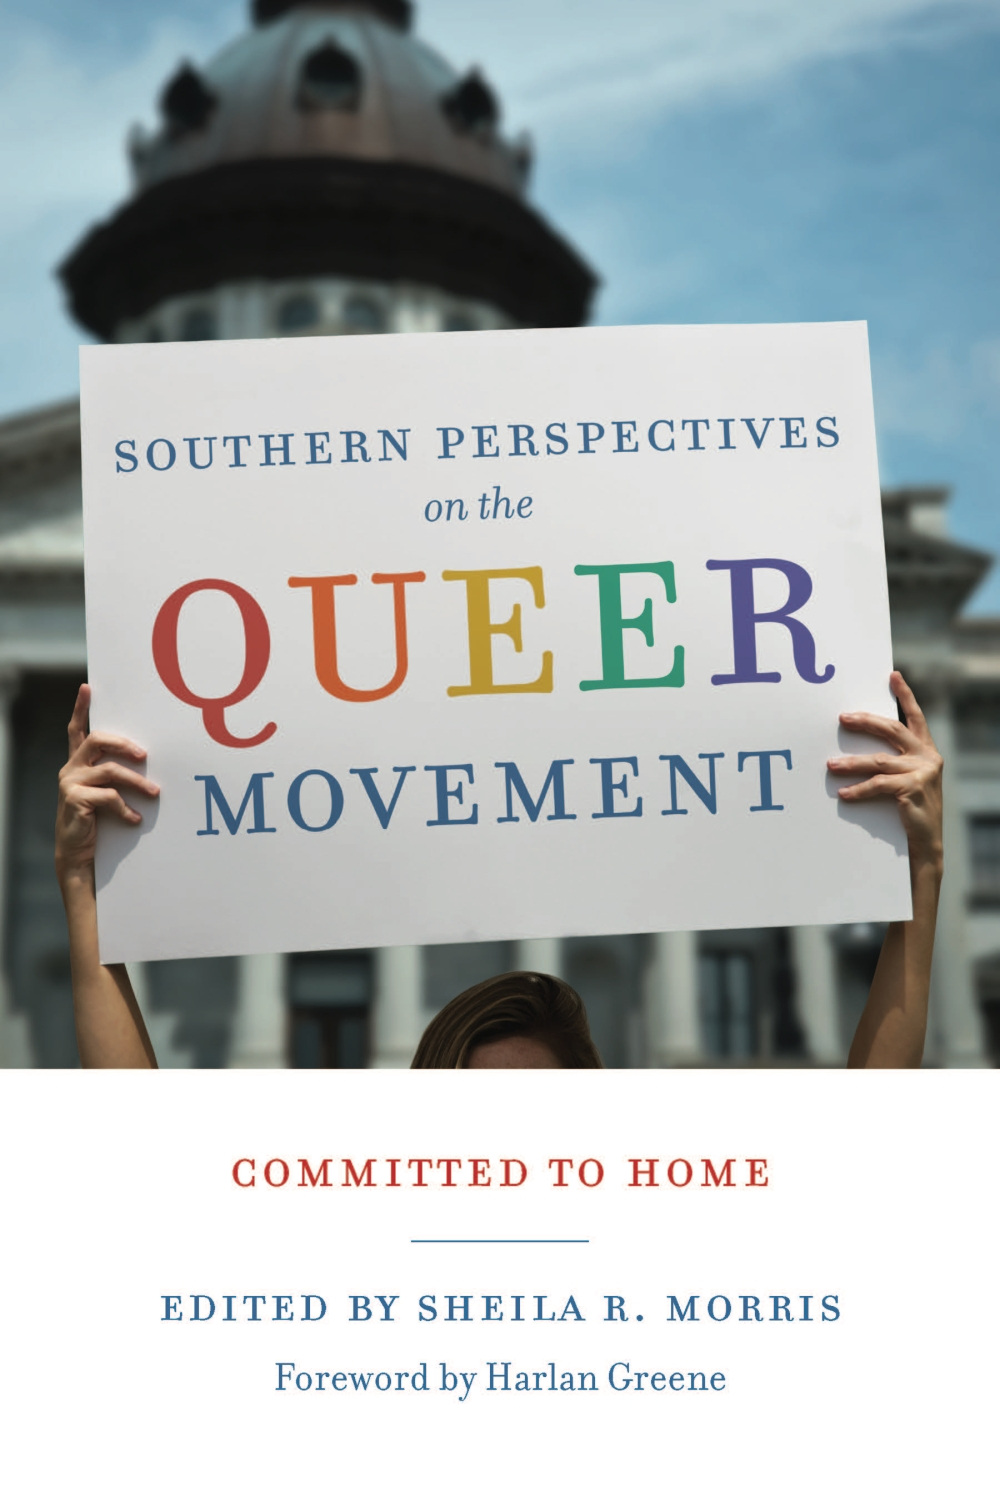 Book cover picture for Sheila Morris's new book published by UofSC Press